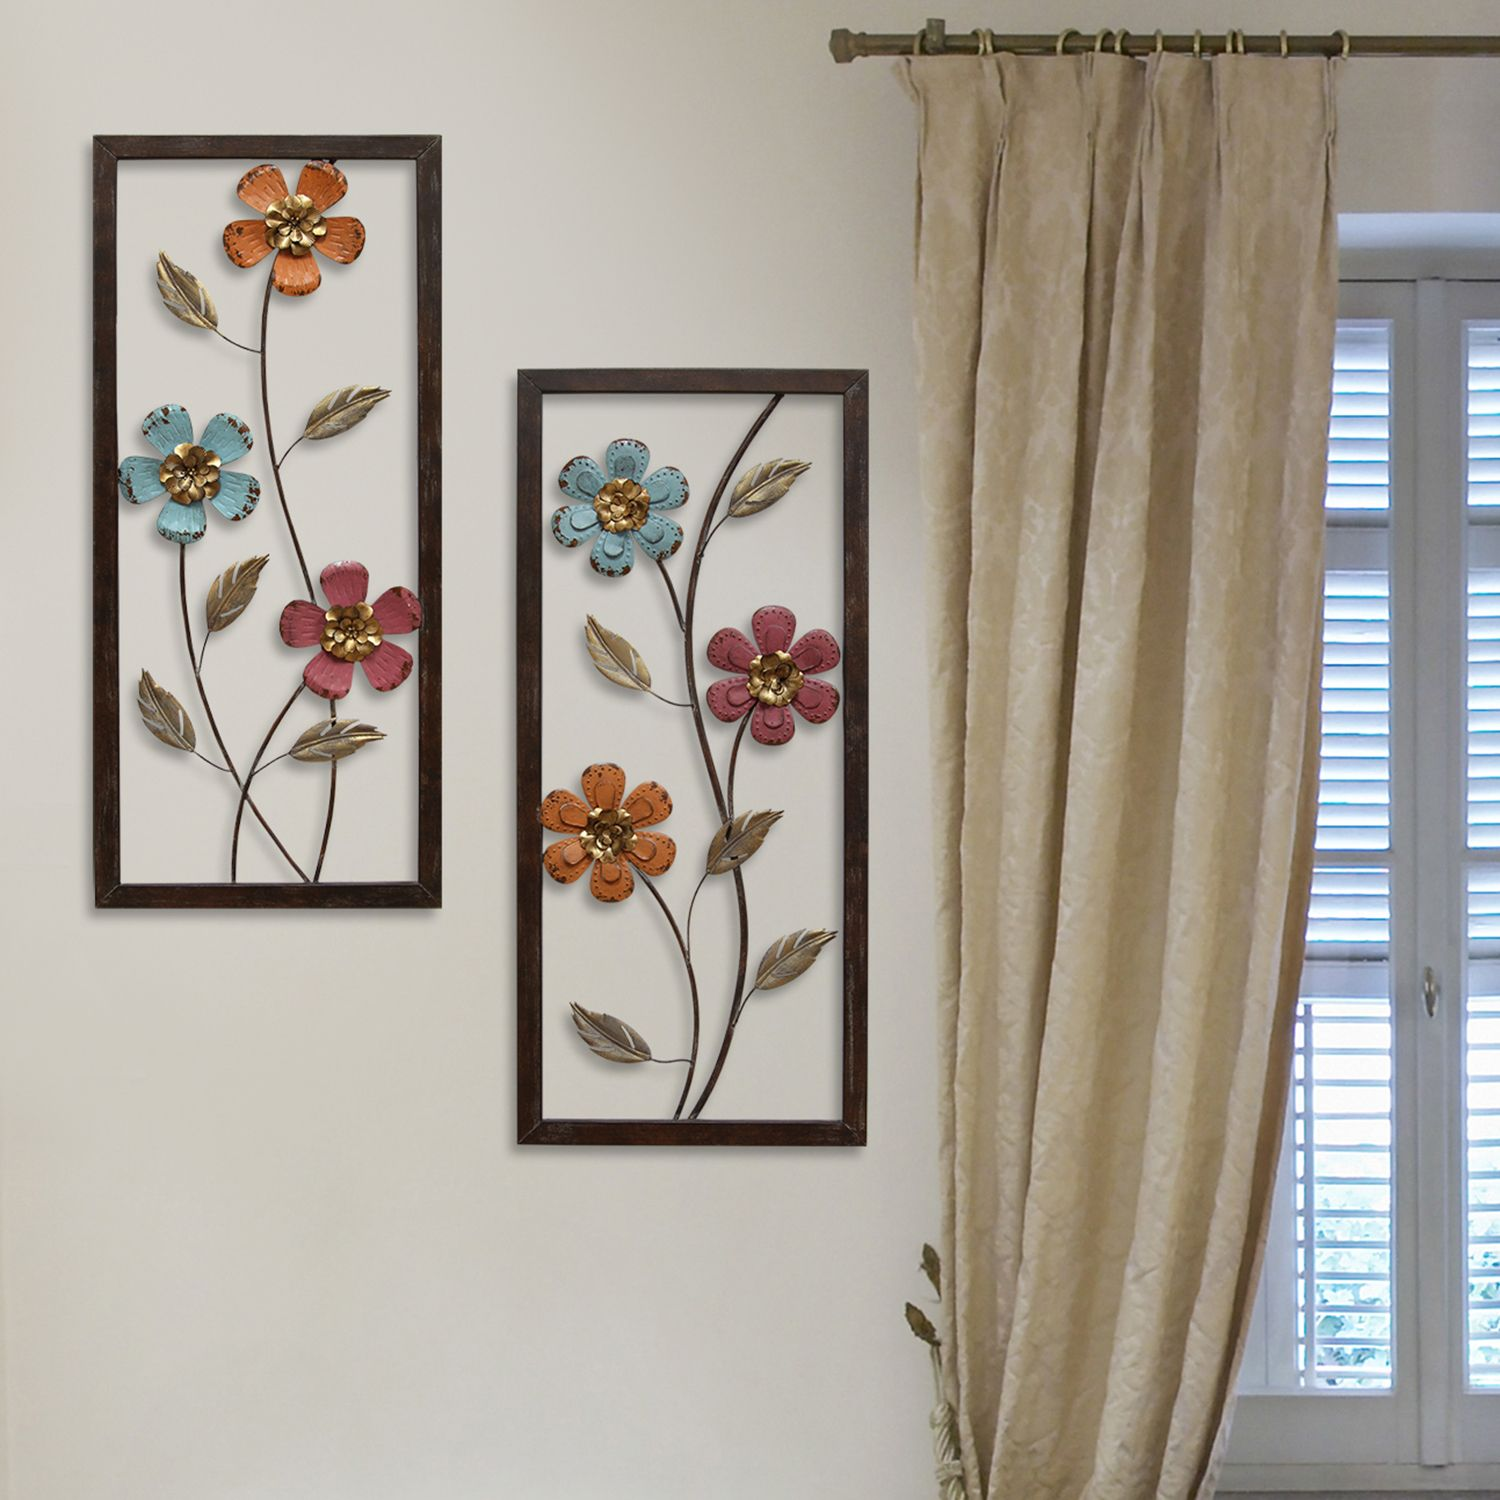 Stratton Home Decor Metal Floral Panel Wall Decor 2 Piece Set